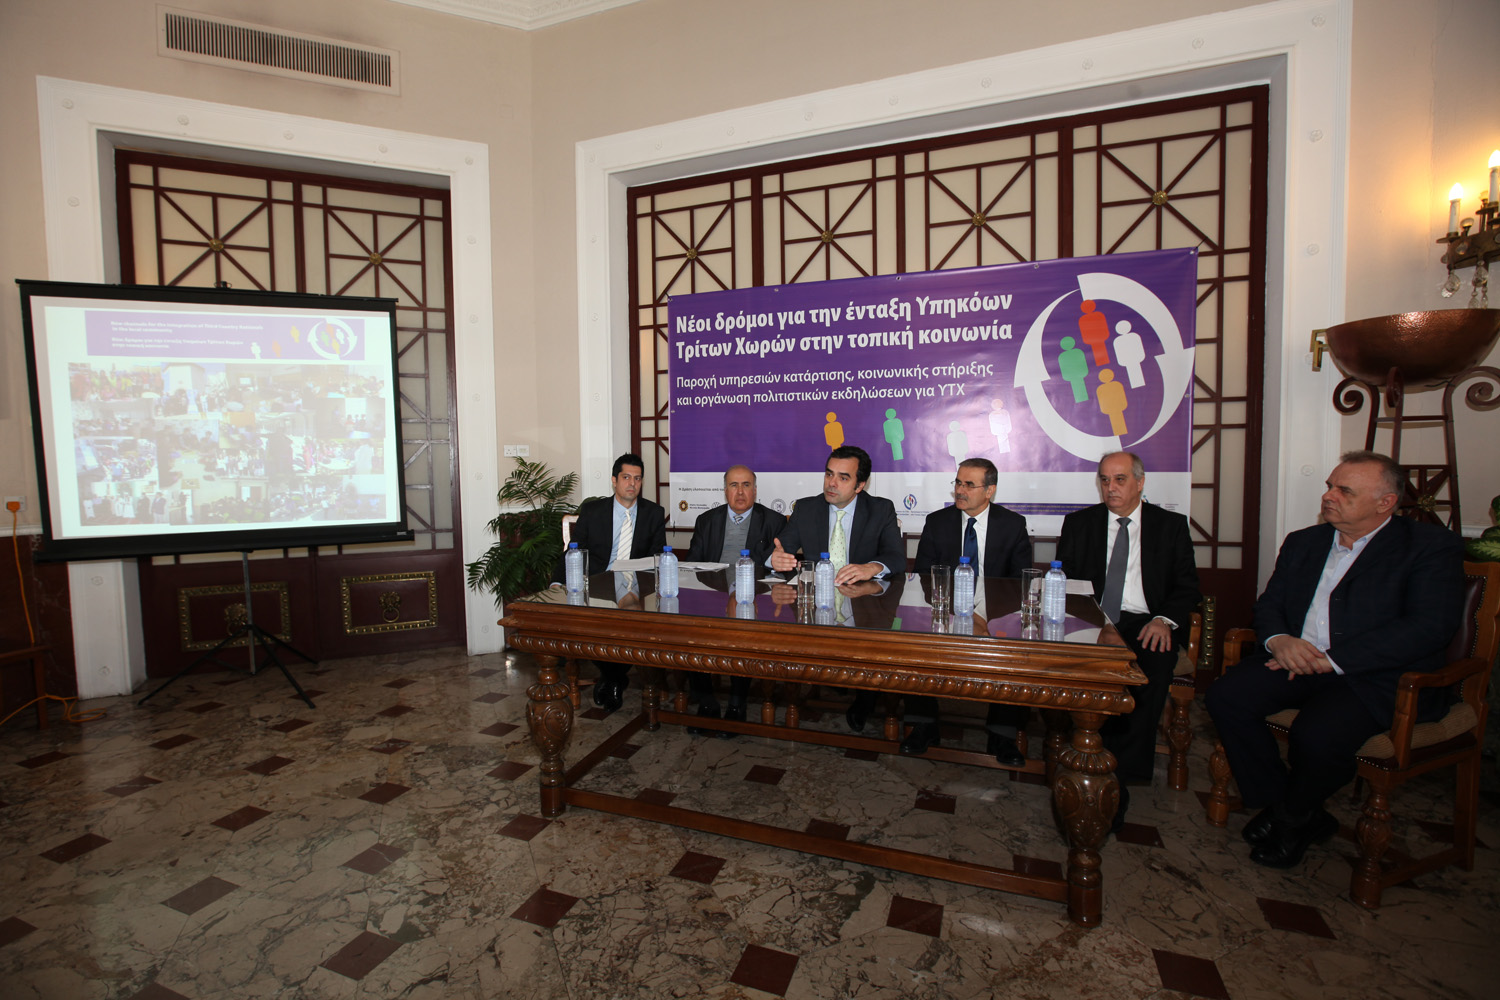 opening_press_conference_170216_06